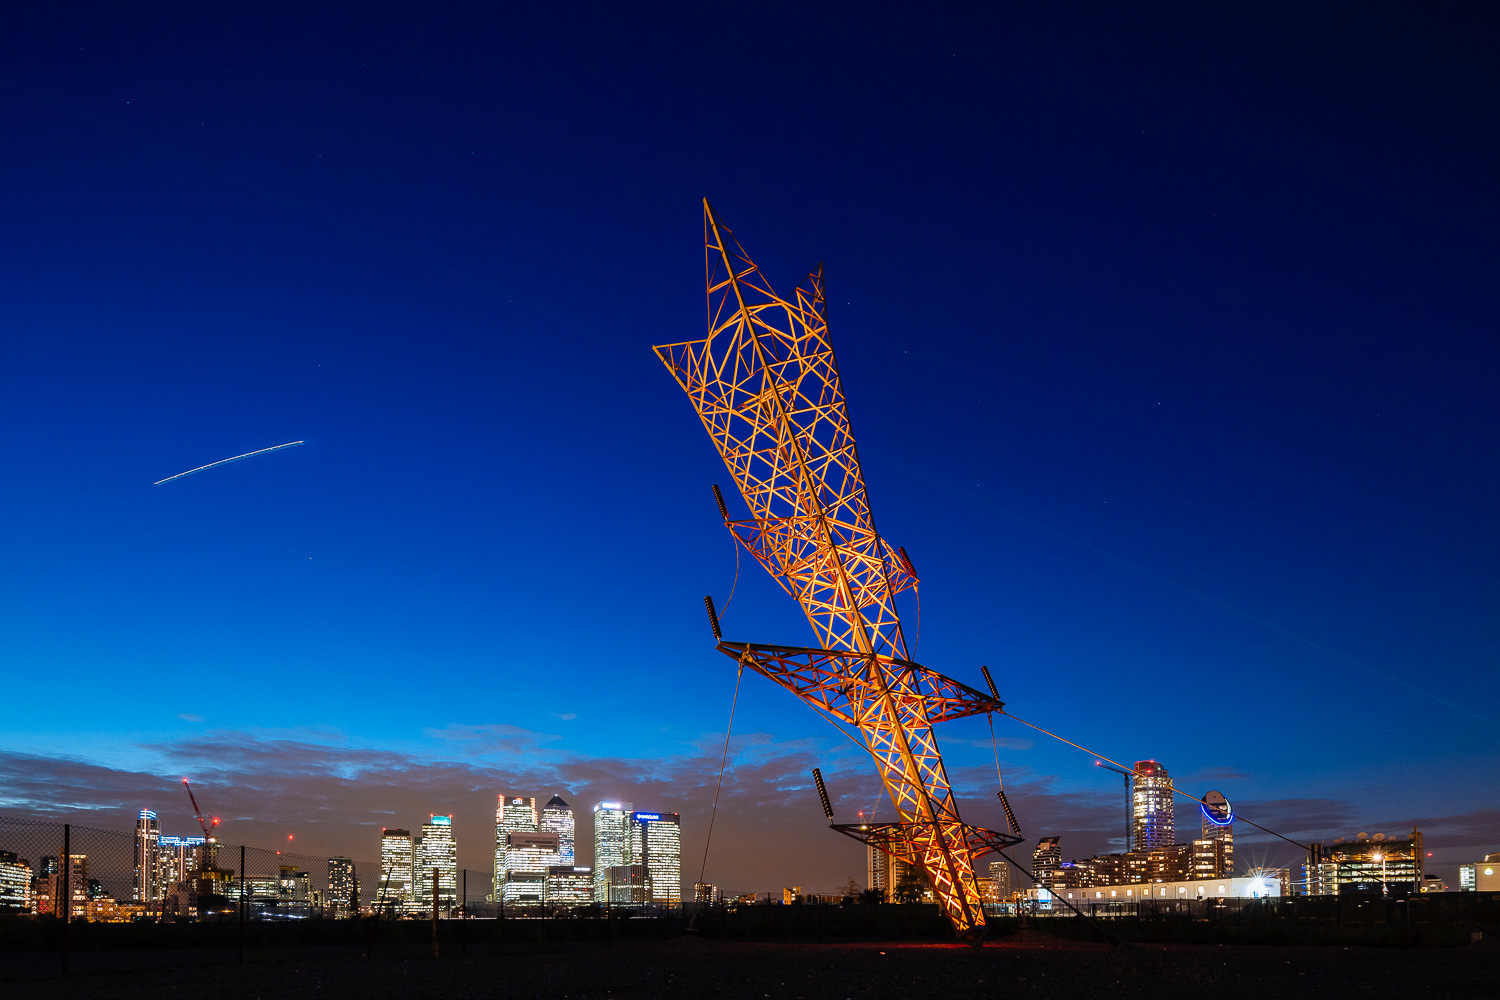 The Pylon. North Greenwich. London, UK